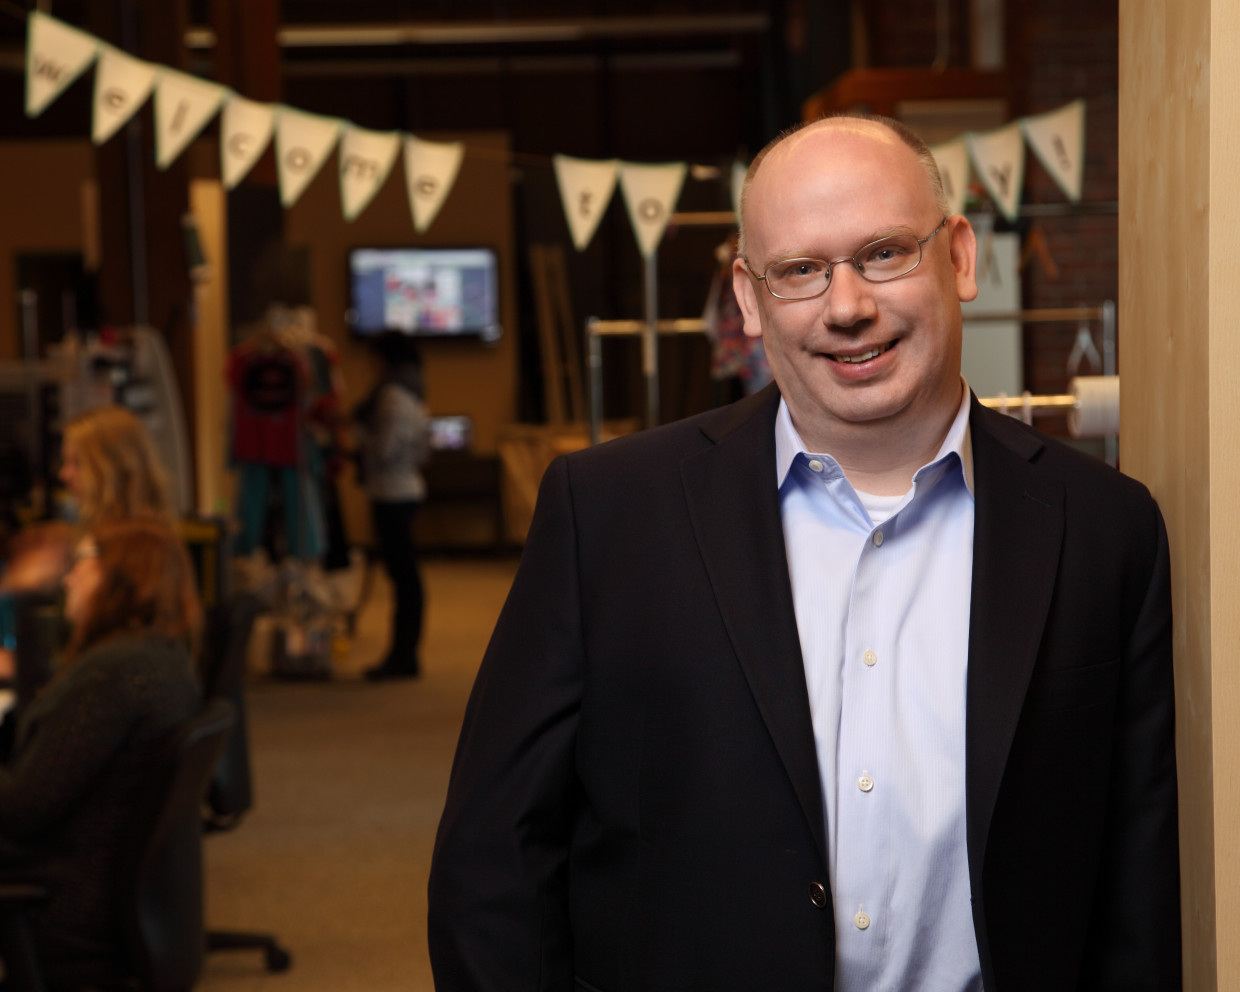 zulily ceo darrell cavens  lead  ventures team  retail powerhouse qvc shopping